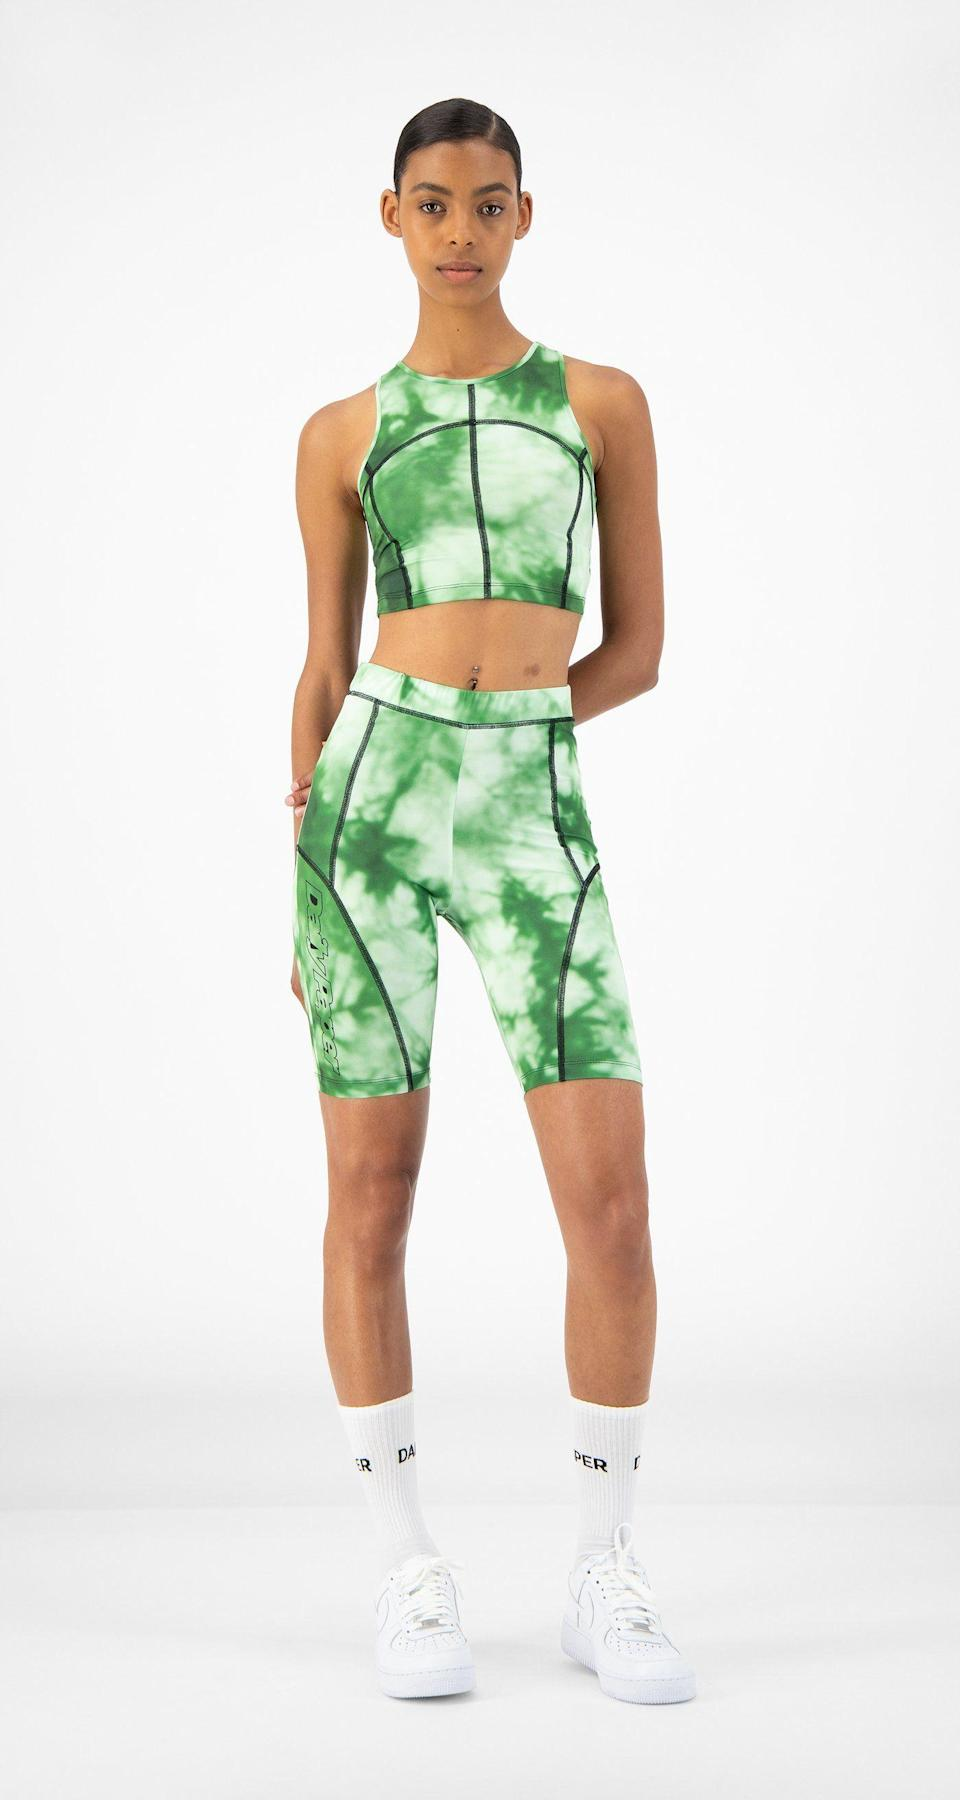 """<p><strong>Daily Paper</strong></p><p>dailypaperclothing.com</p><p><strong>74.00</strong></p><p><a href=""""https://www.dailypaperclothing.com/collections/women-all/products/green-tie-dye-resymetric-vest"""" rel=""""nofollow noopener"""" target=""""_blank"""" data-ylk=""""slk:Shop Now"""" class=""""link rapid-noclick-resp"""">Shop Now</a></p><p>The casual streetwear label maintains a steady stream of activewear that leverages psychedelic prints, neon piping and geometric silhouettes, altering convention in the aerobic exercise uniform. </p>"""